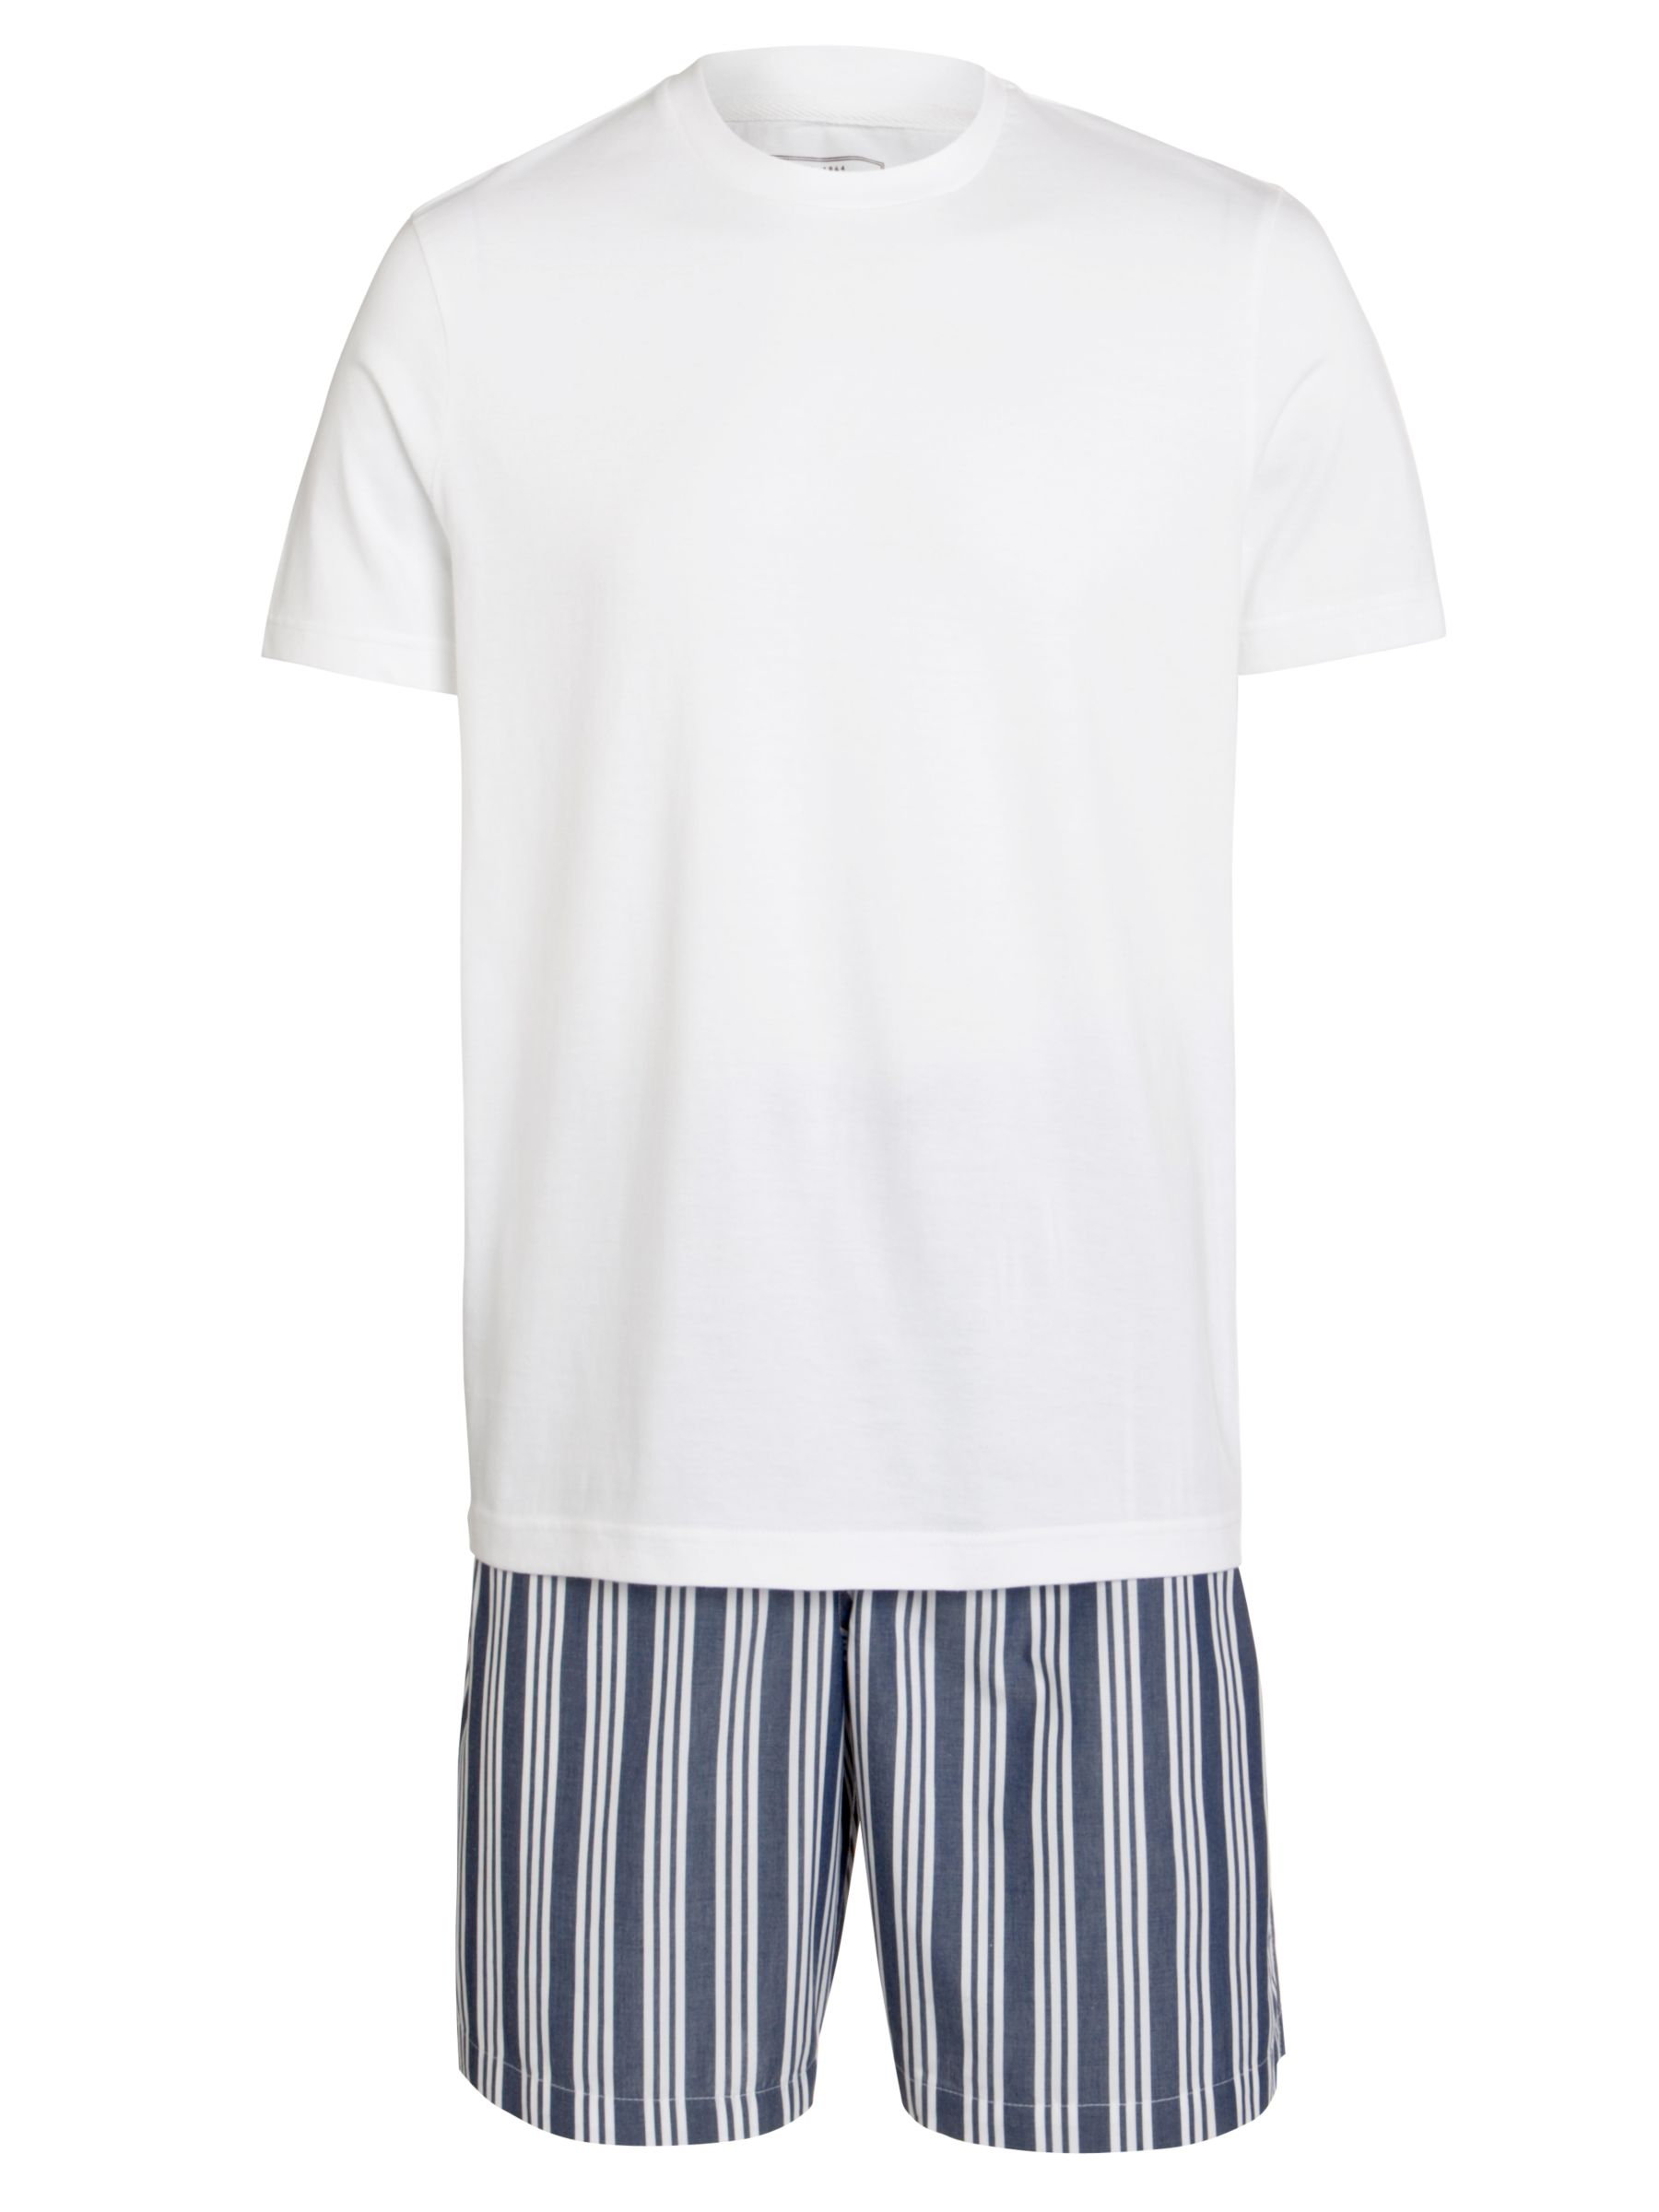 John Lewis Cotton T-Shirt and Striped Short Lounge Set, Navy